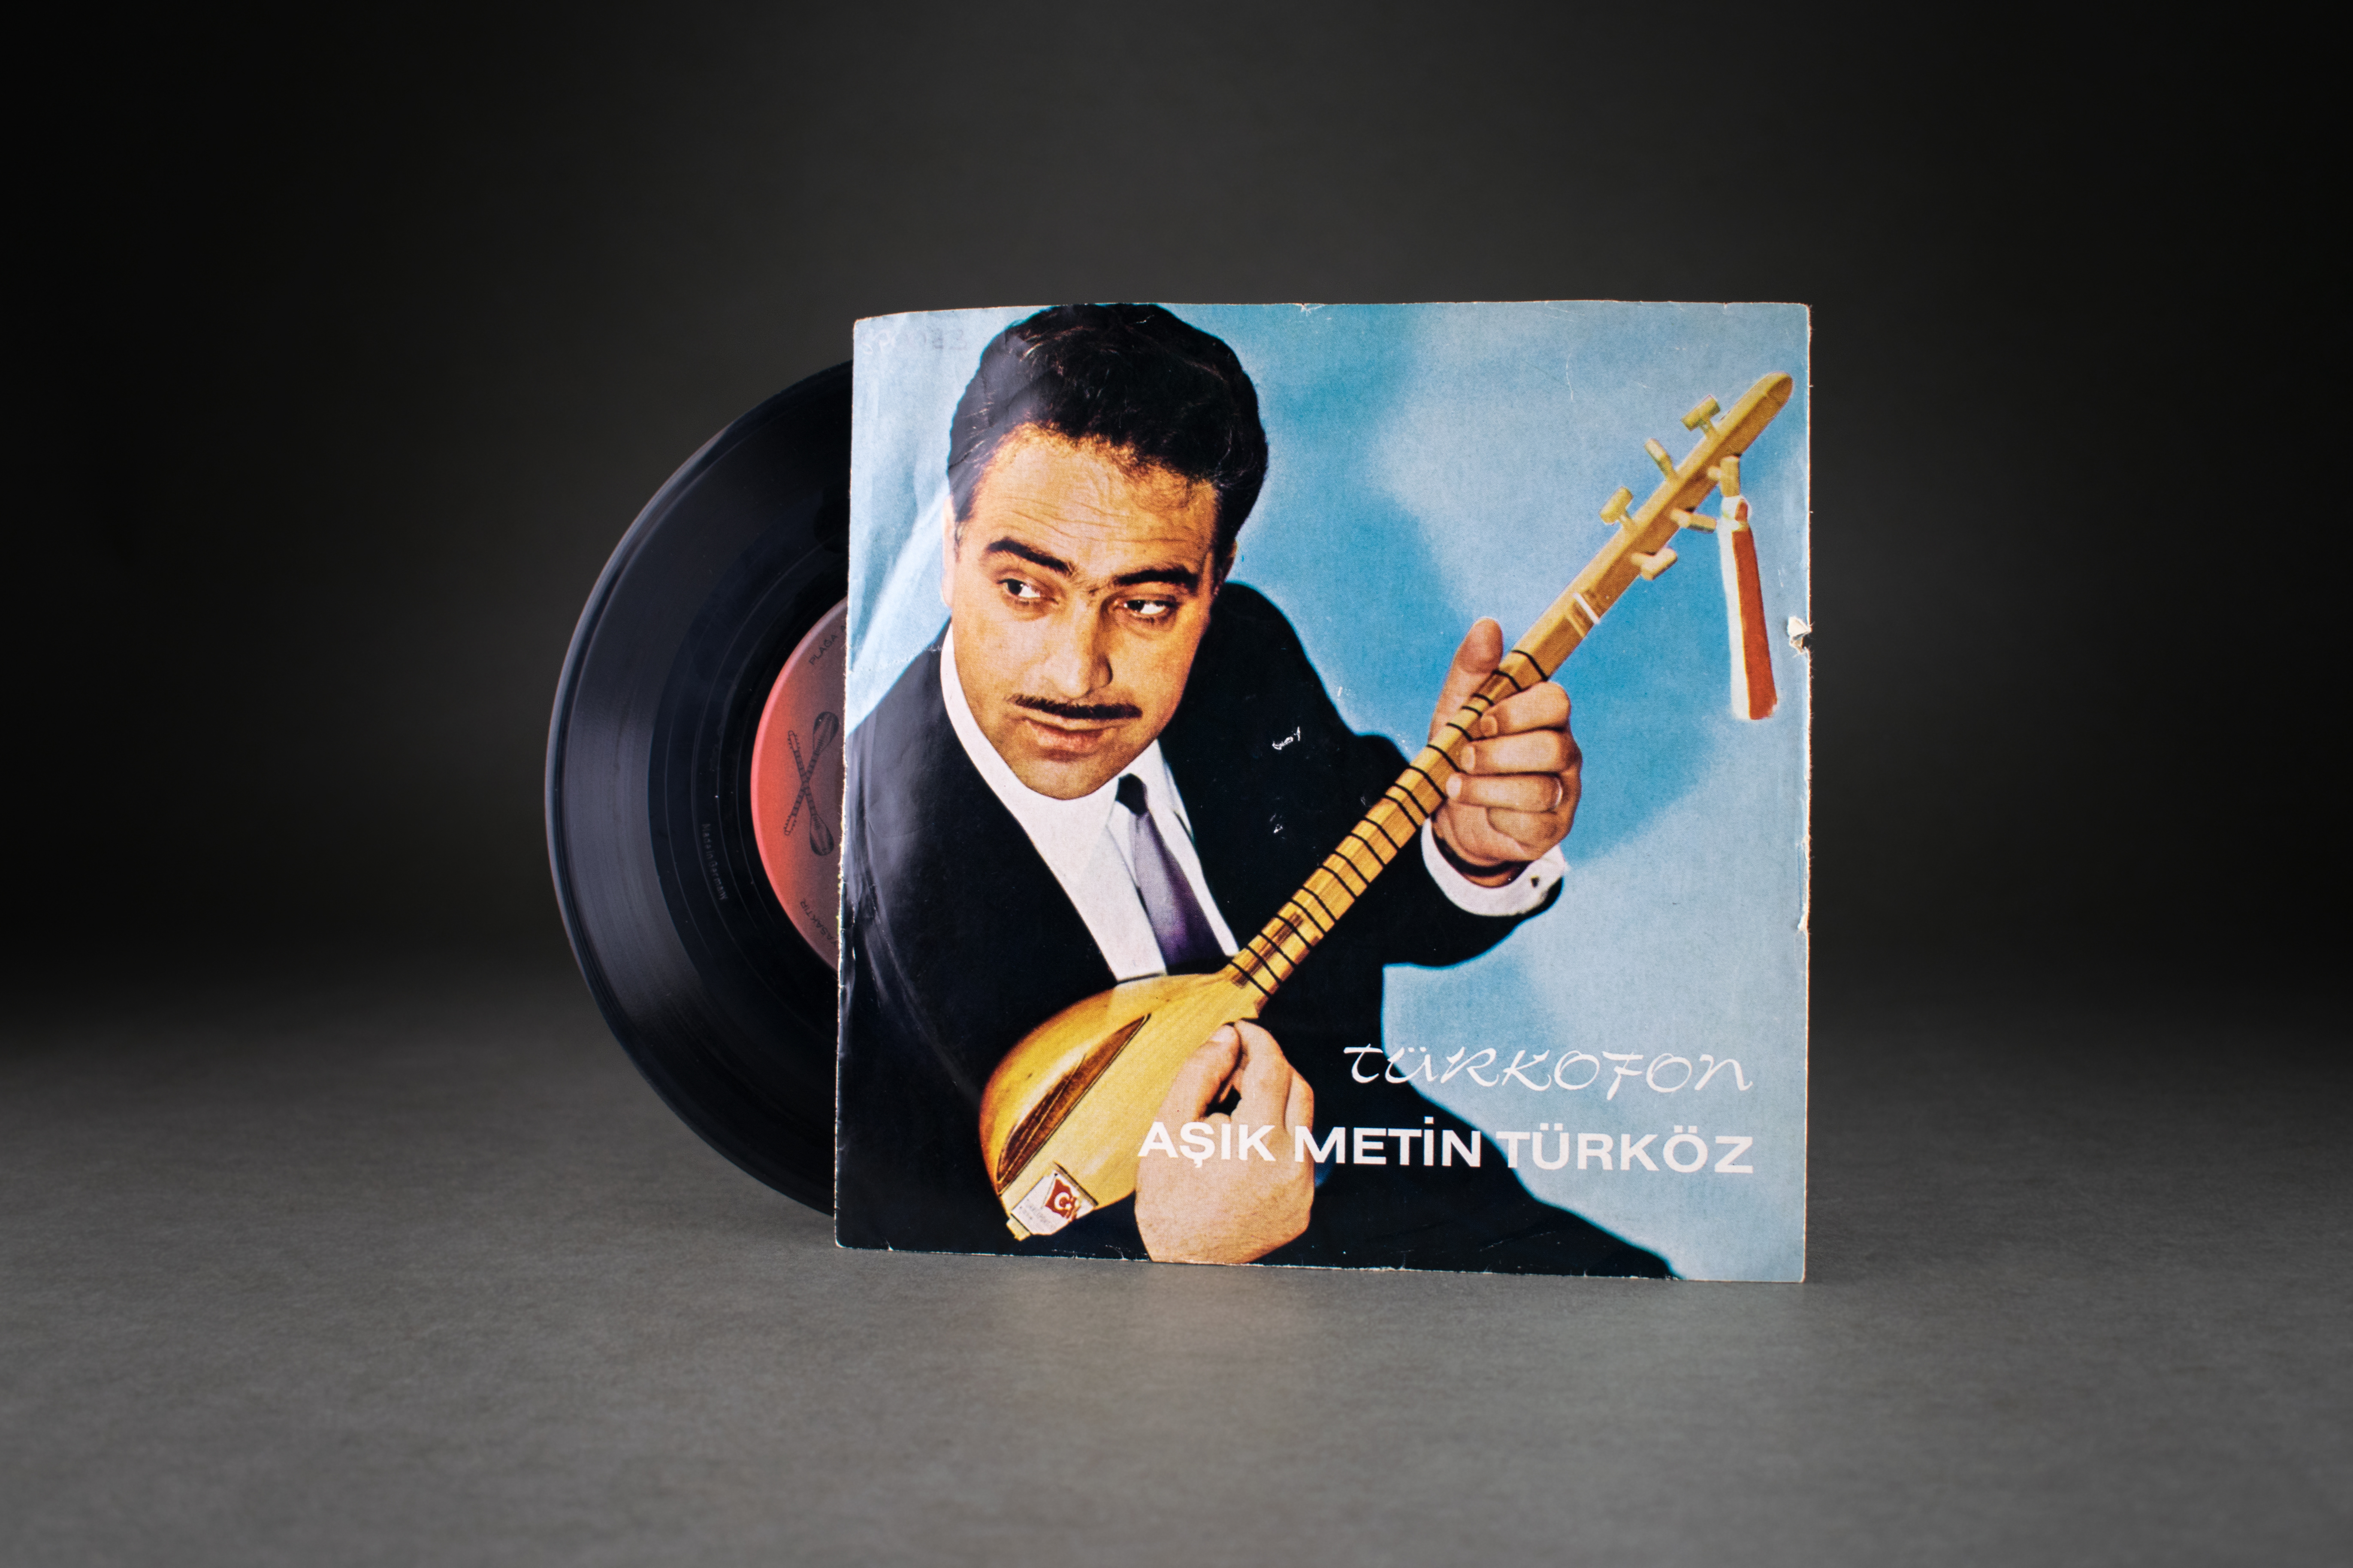 "Record ""Kabahat Tercümanda"" by Metin Türköz, 1970s, turophone. DOMiD Archive, Cologne, BT 0204,0001 Metin Türköz was one of the best-known singers of so-called ""guest worker music"". His songs reported on the everyday life of migrant workers, such as the song ""Guten Morgen Mayistero"". Many of them were socially critical, as the title ""Gastarbayter Raus"" makes clear."